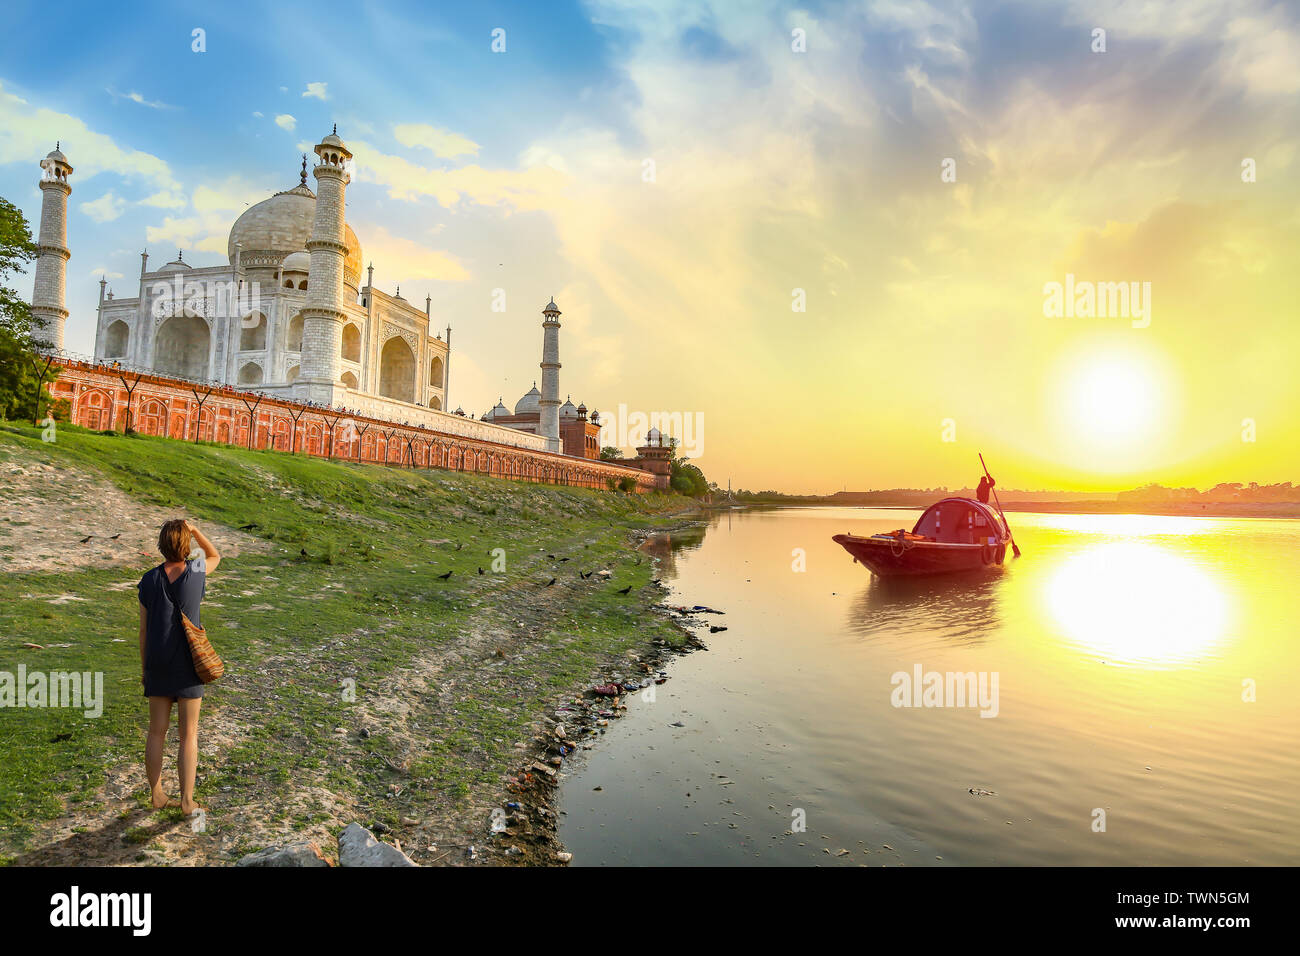 Taj Mahal at sunset with view of boat on river Yamuna at Agra India. Taj Mahal is a UNESCO World Heritage site and mughal architecture masterpiece Stock Photo